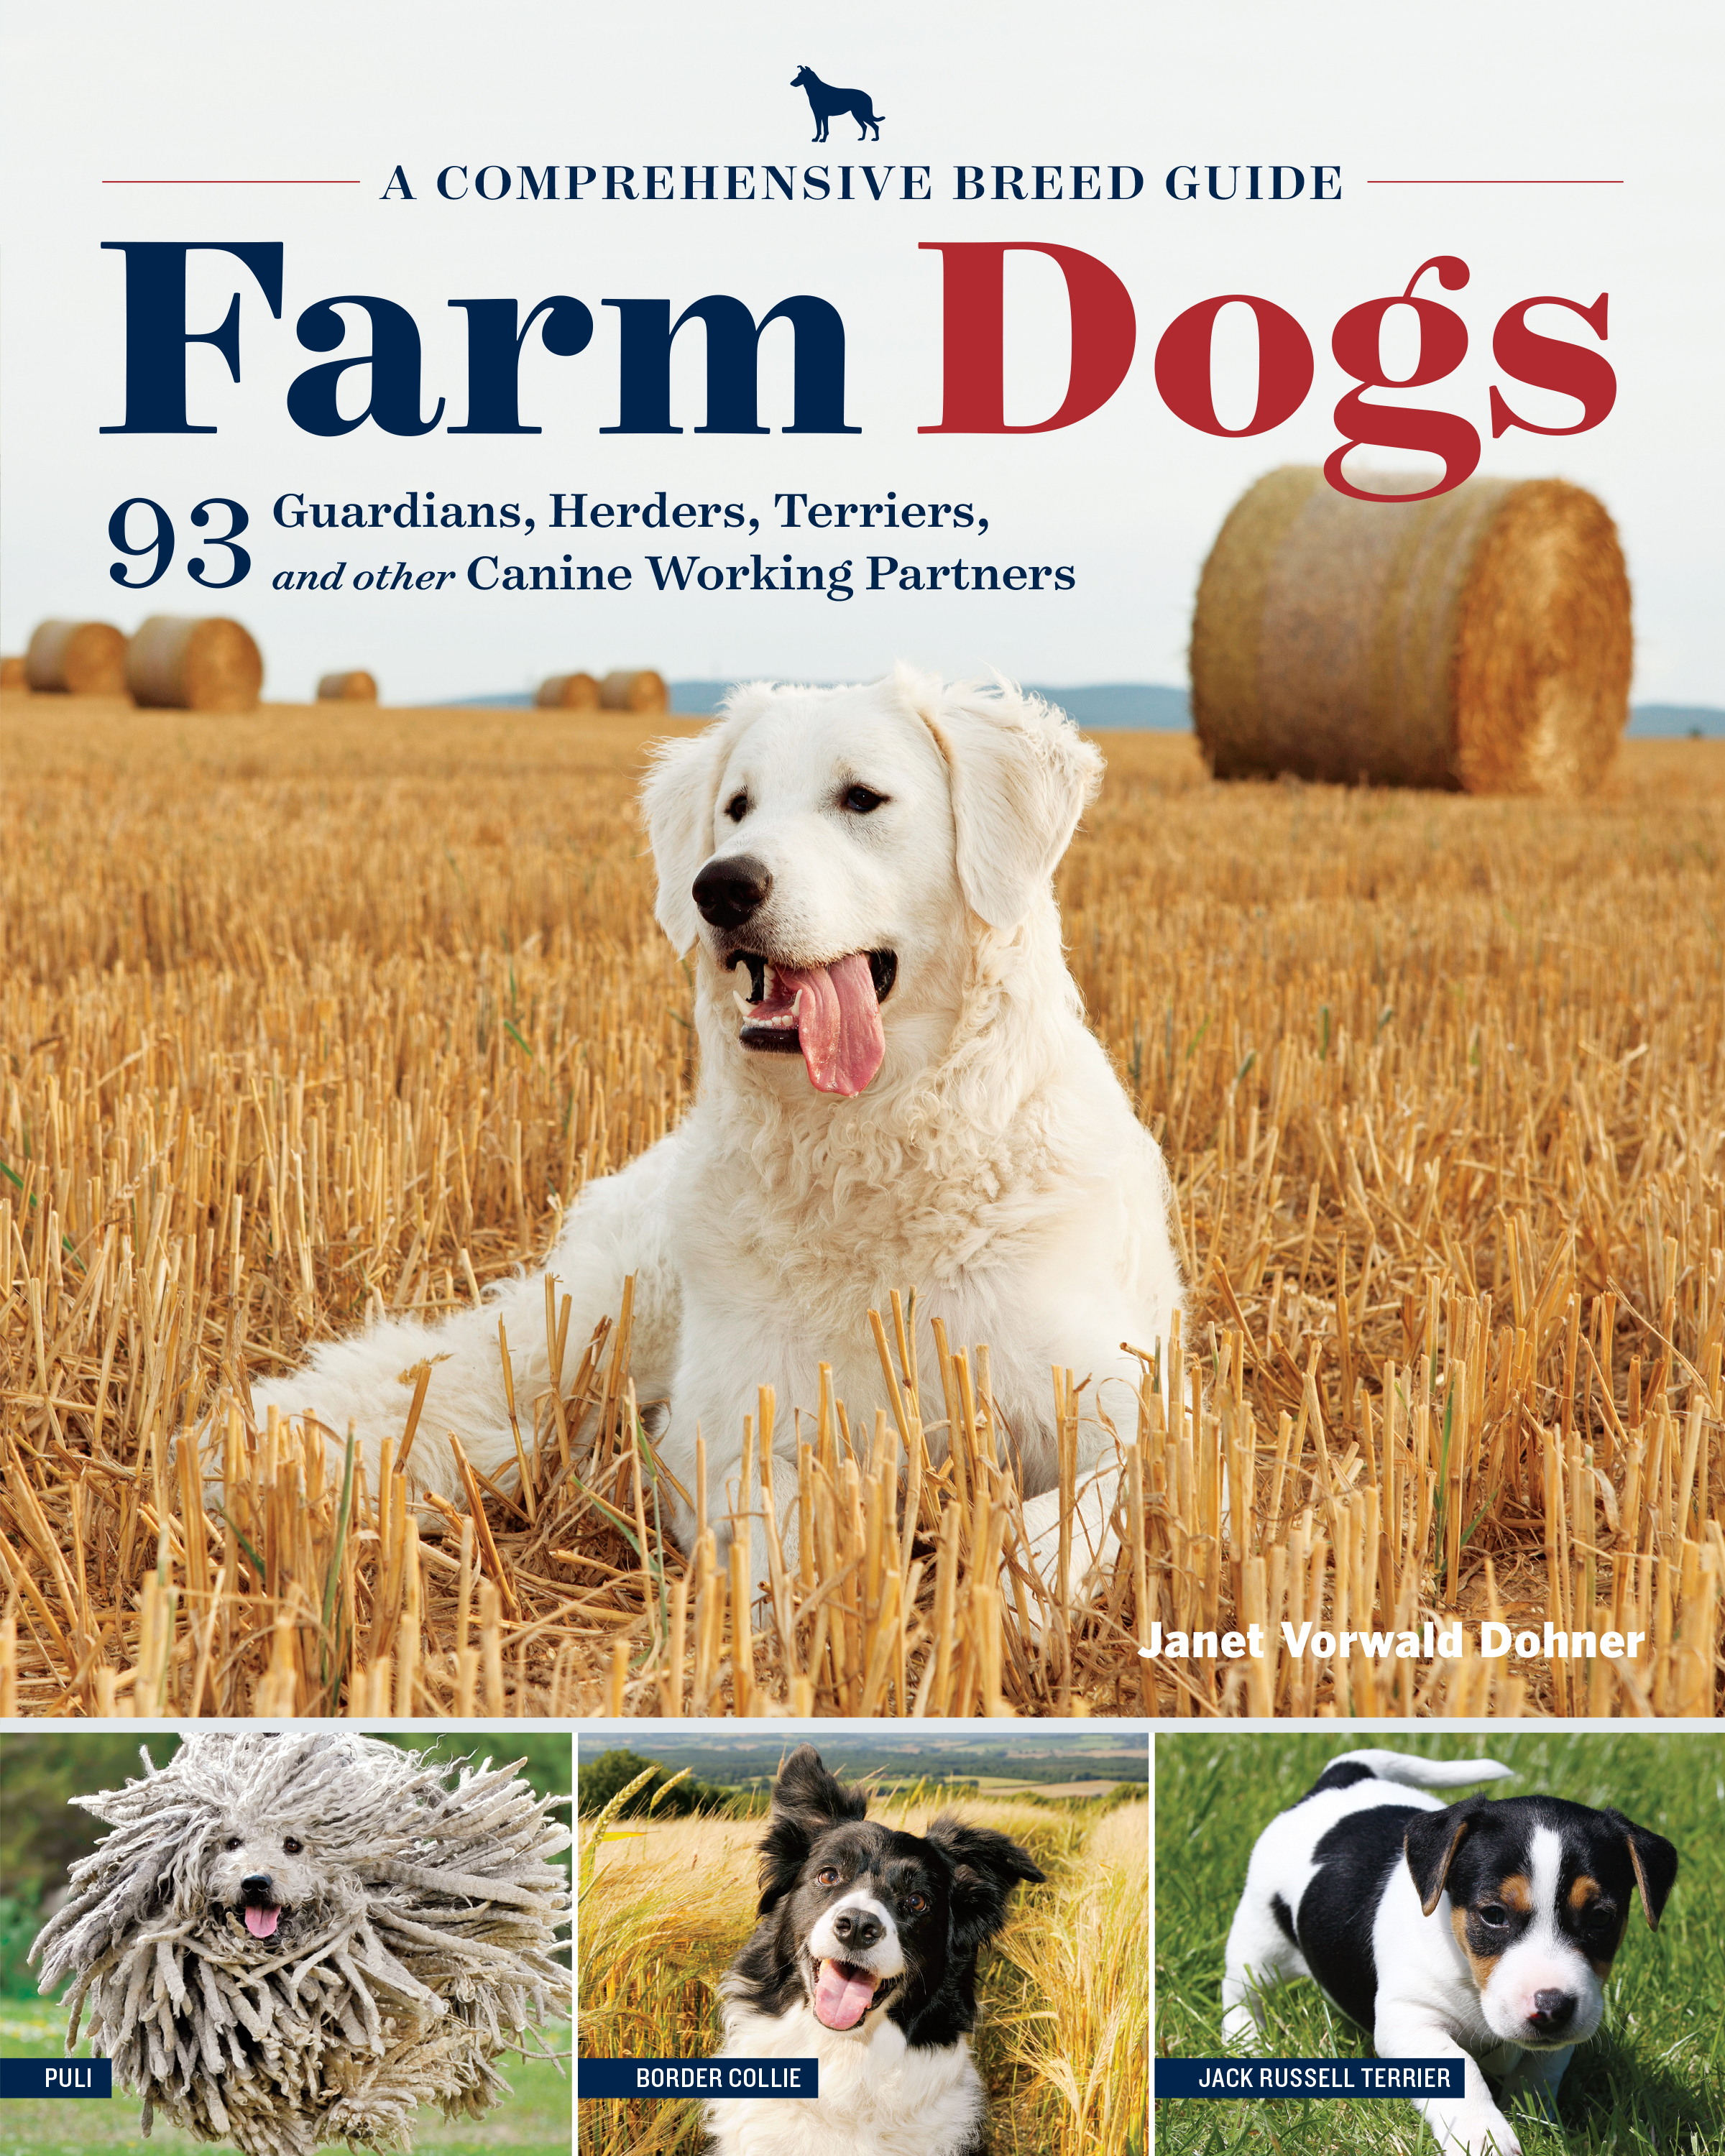 Farm Dogs A Comprehensive Breed Guide to 93 Guardians, Herders, Terriers, and Other Canine Working Partners - Janet Vorwald Dohner